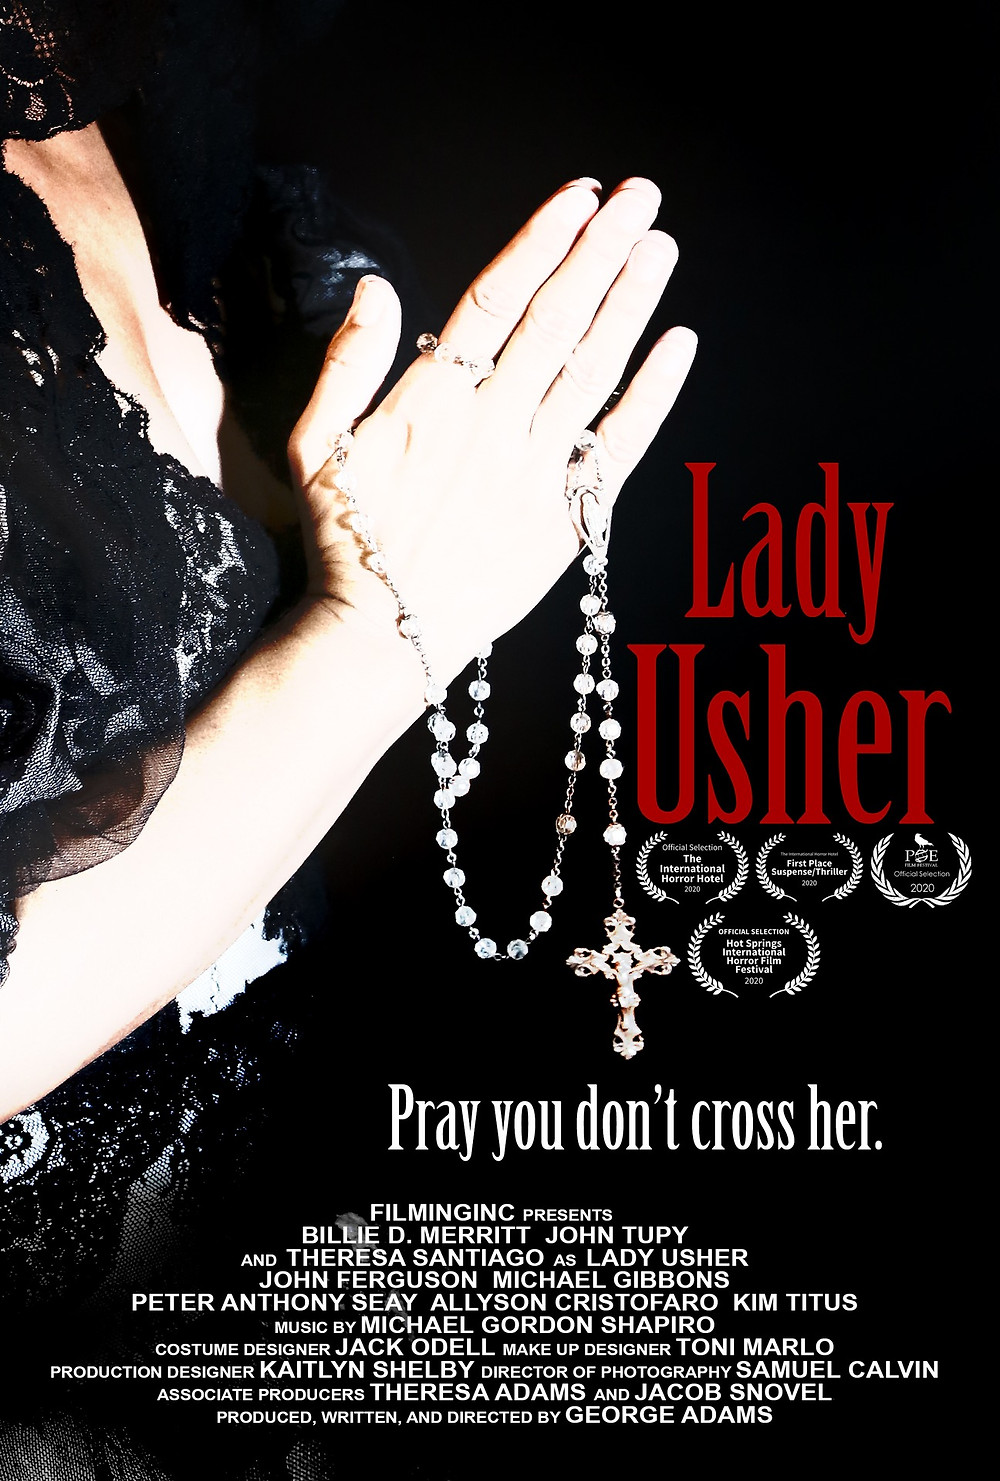 Poster for Lady Usher showing protagonist Theresa Santiago.